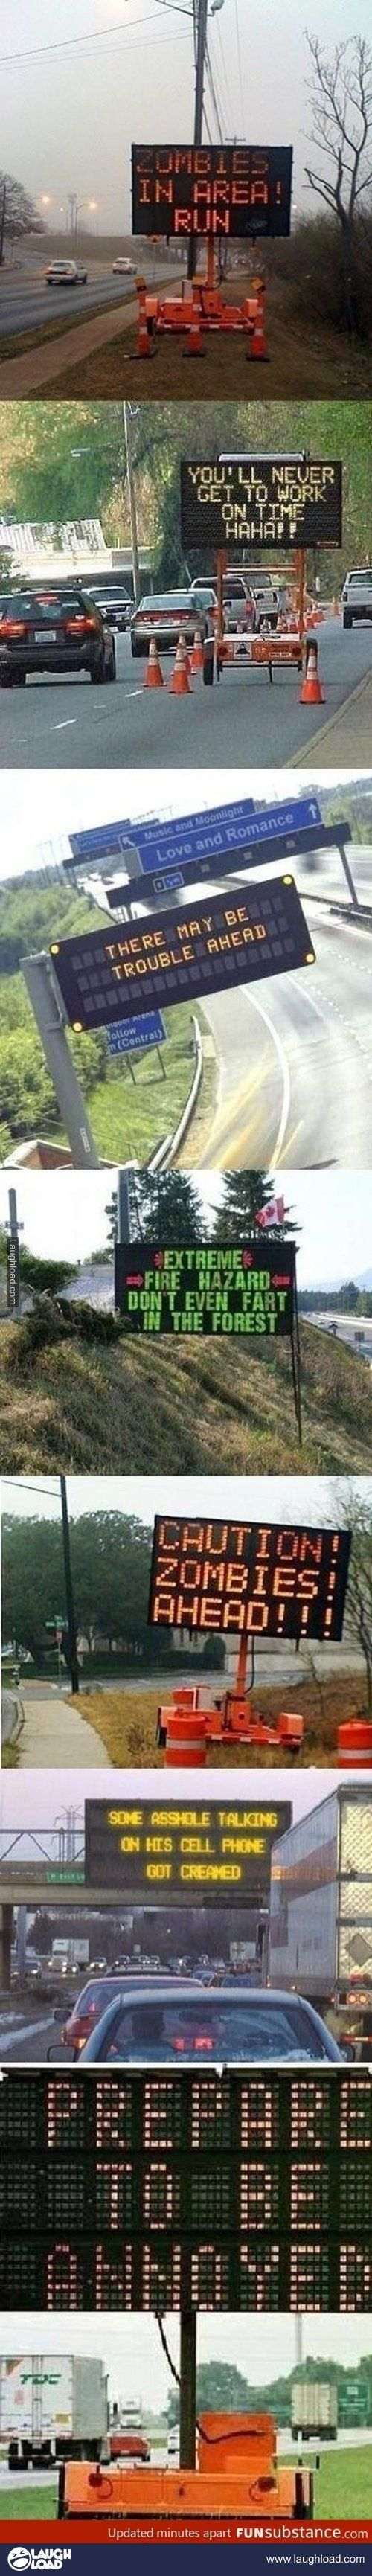 Funny road signs                                                                                                                                                                                 More